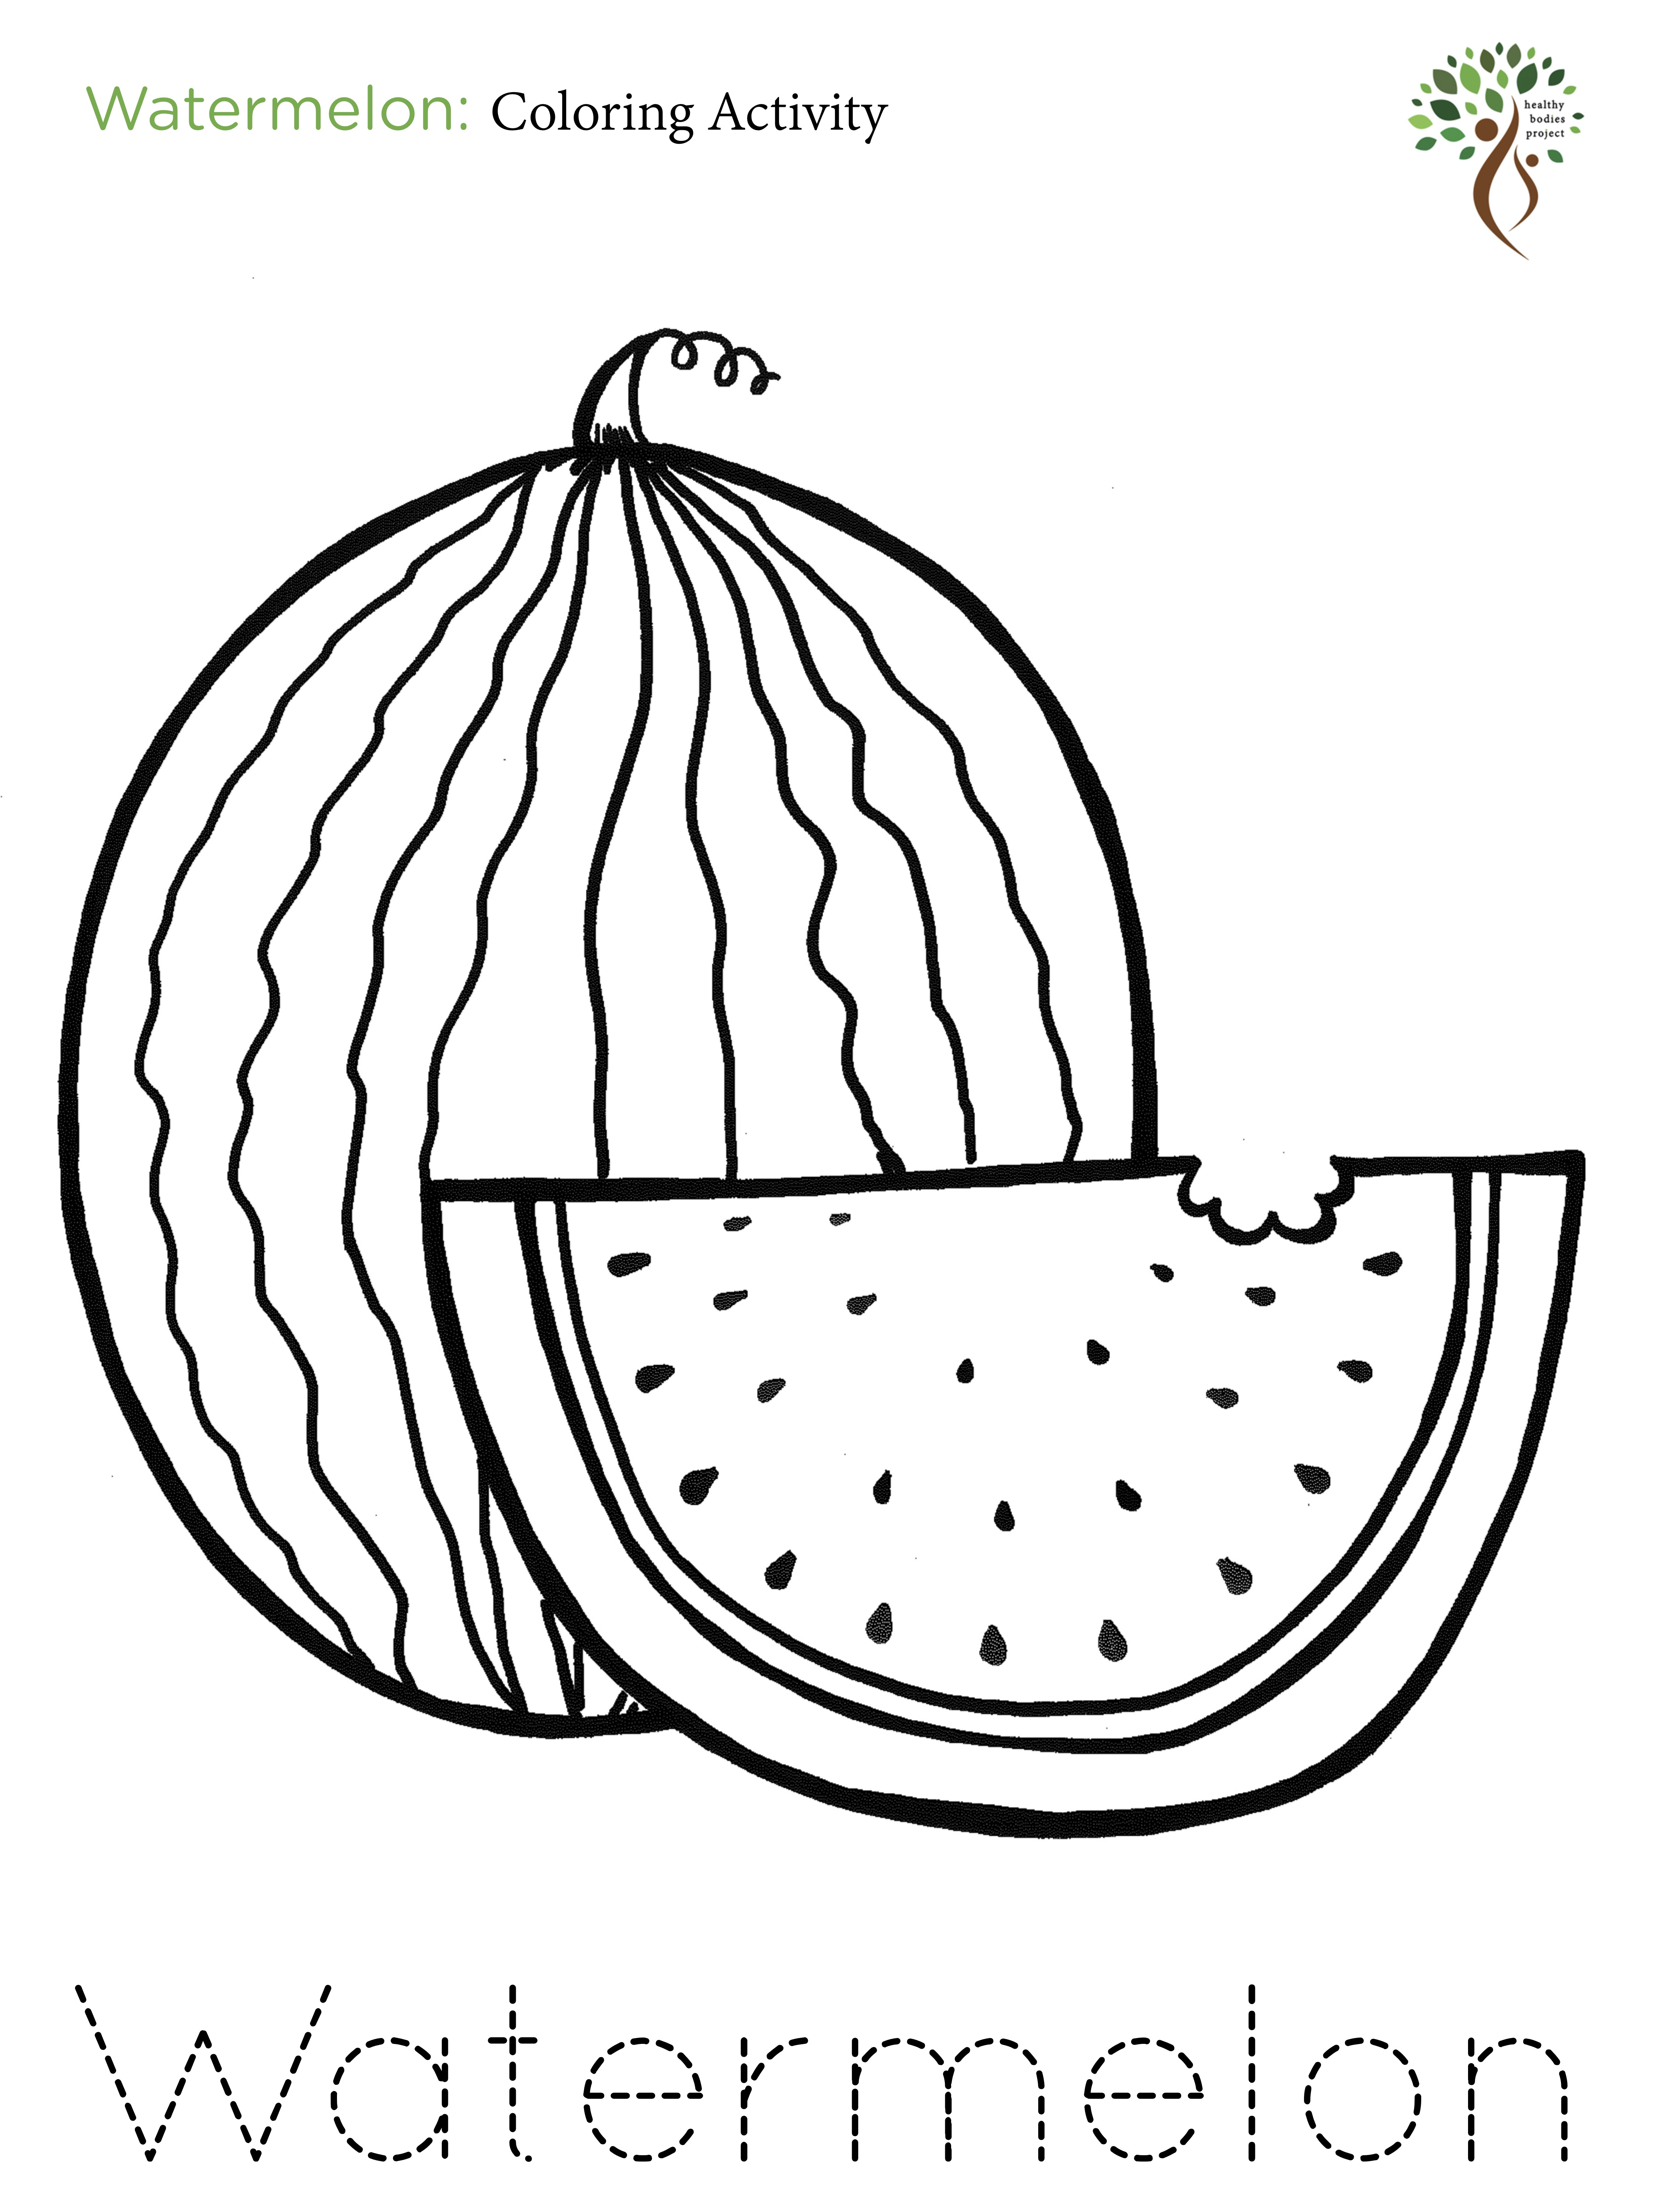 watermelon coloring image a z coloring activities healthy bodies project image watermelon coloring